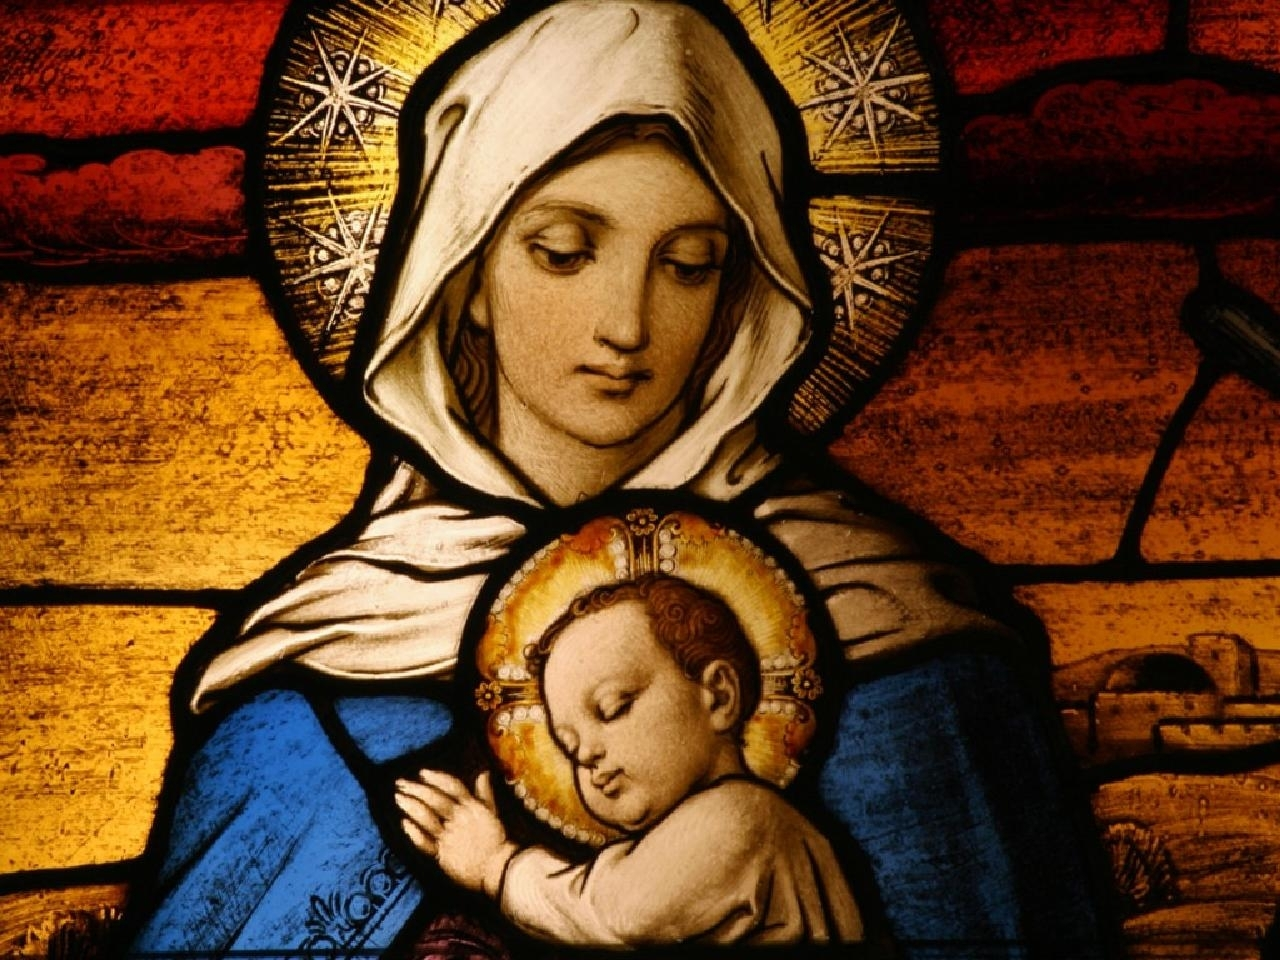 mother mary with baby jesus christ wallpaper picture download